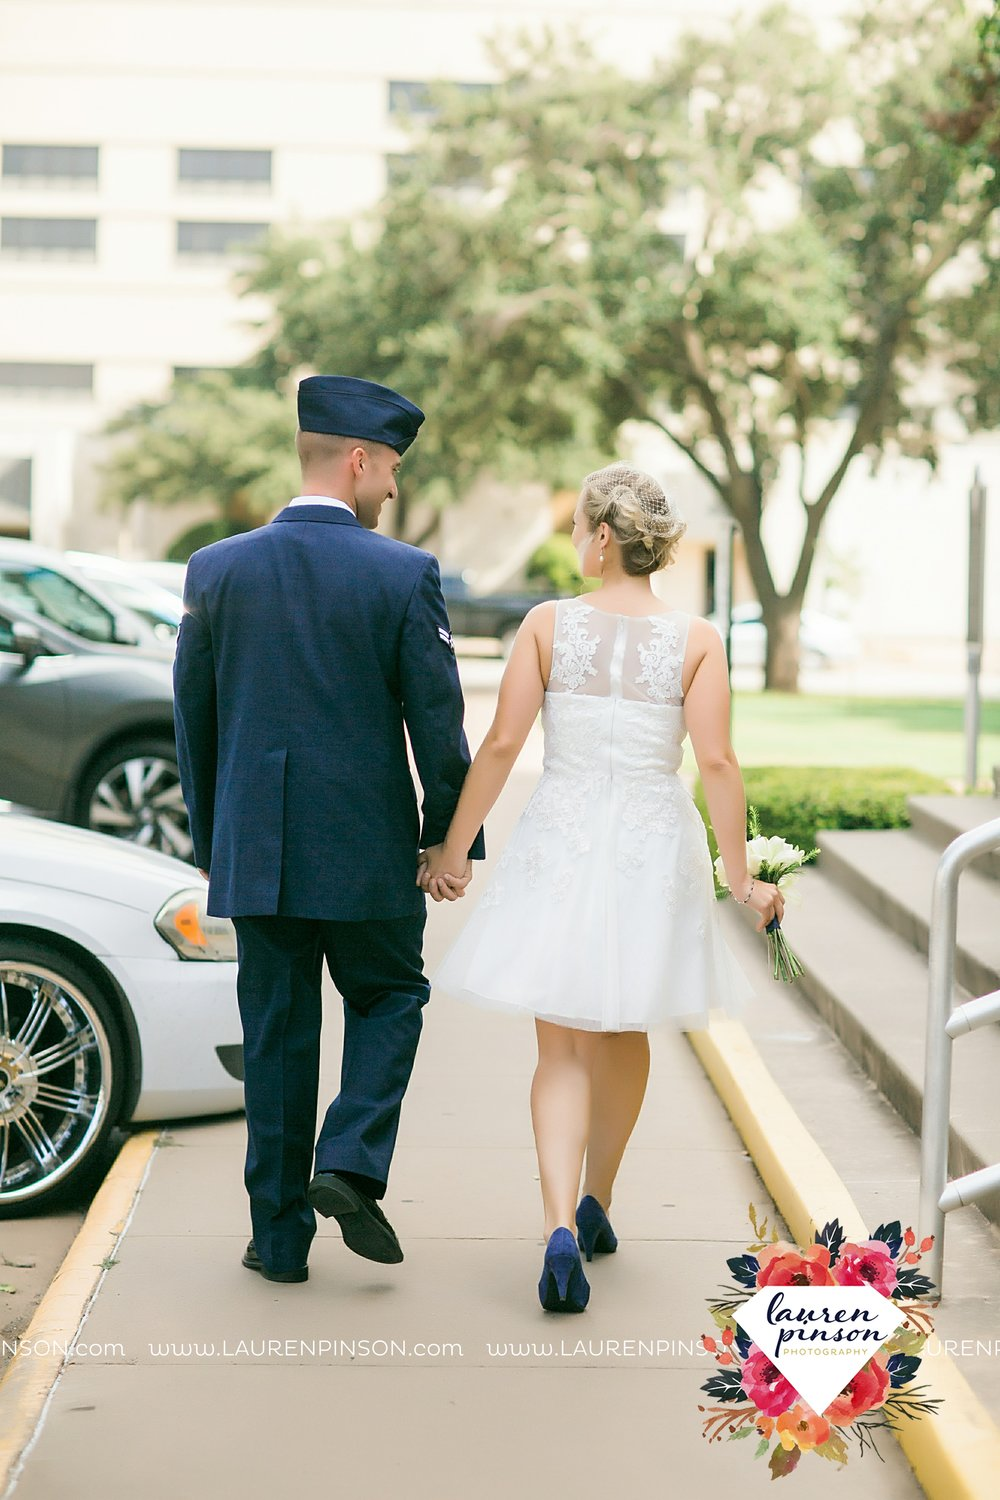 sheppard-afb-wichita-falls-texas-elopement-courthouse-wedding-photographer-justice-of-the-peace-judge-little-ceremony_3278.jpg